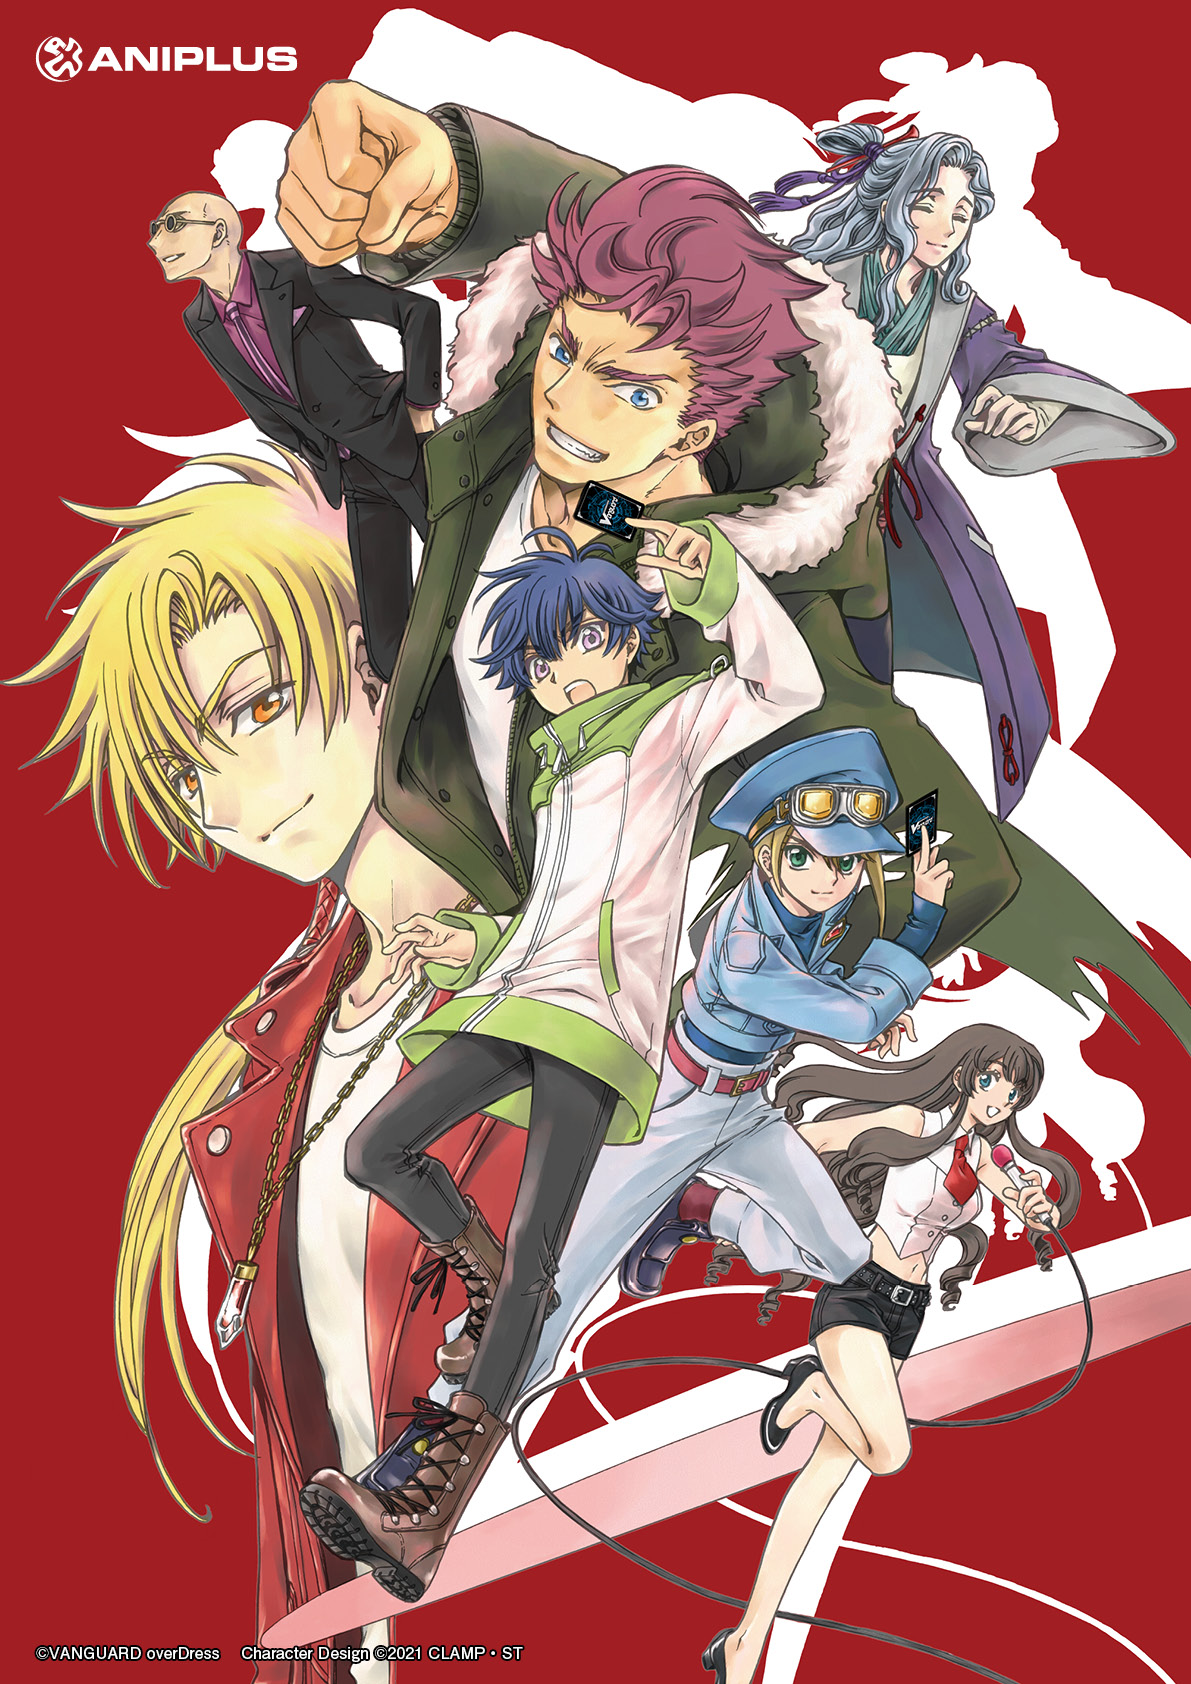 ANIPLUS Asia line-up for spring 2021: CARDFIGHT!! VANGUARD overDress Key Visual